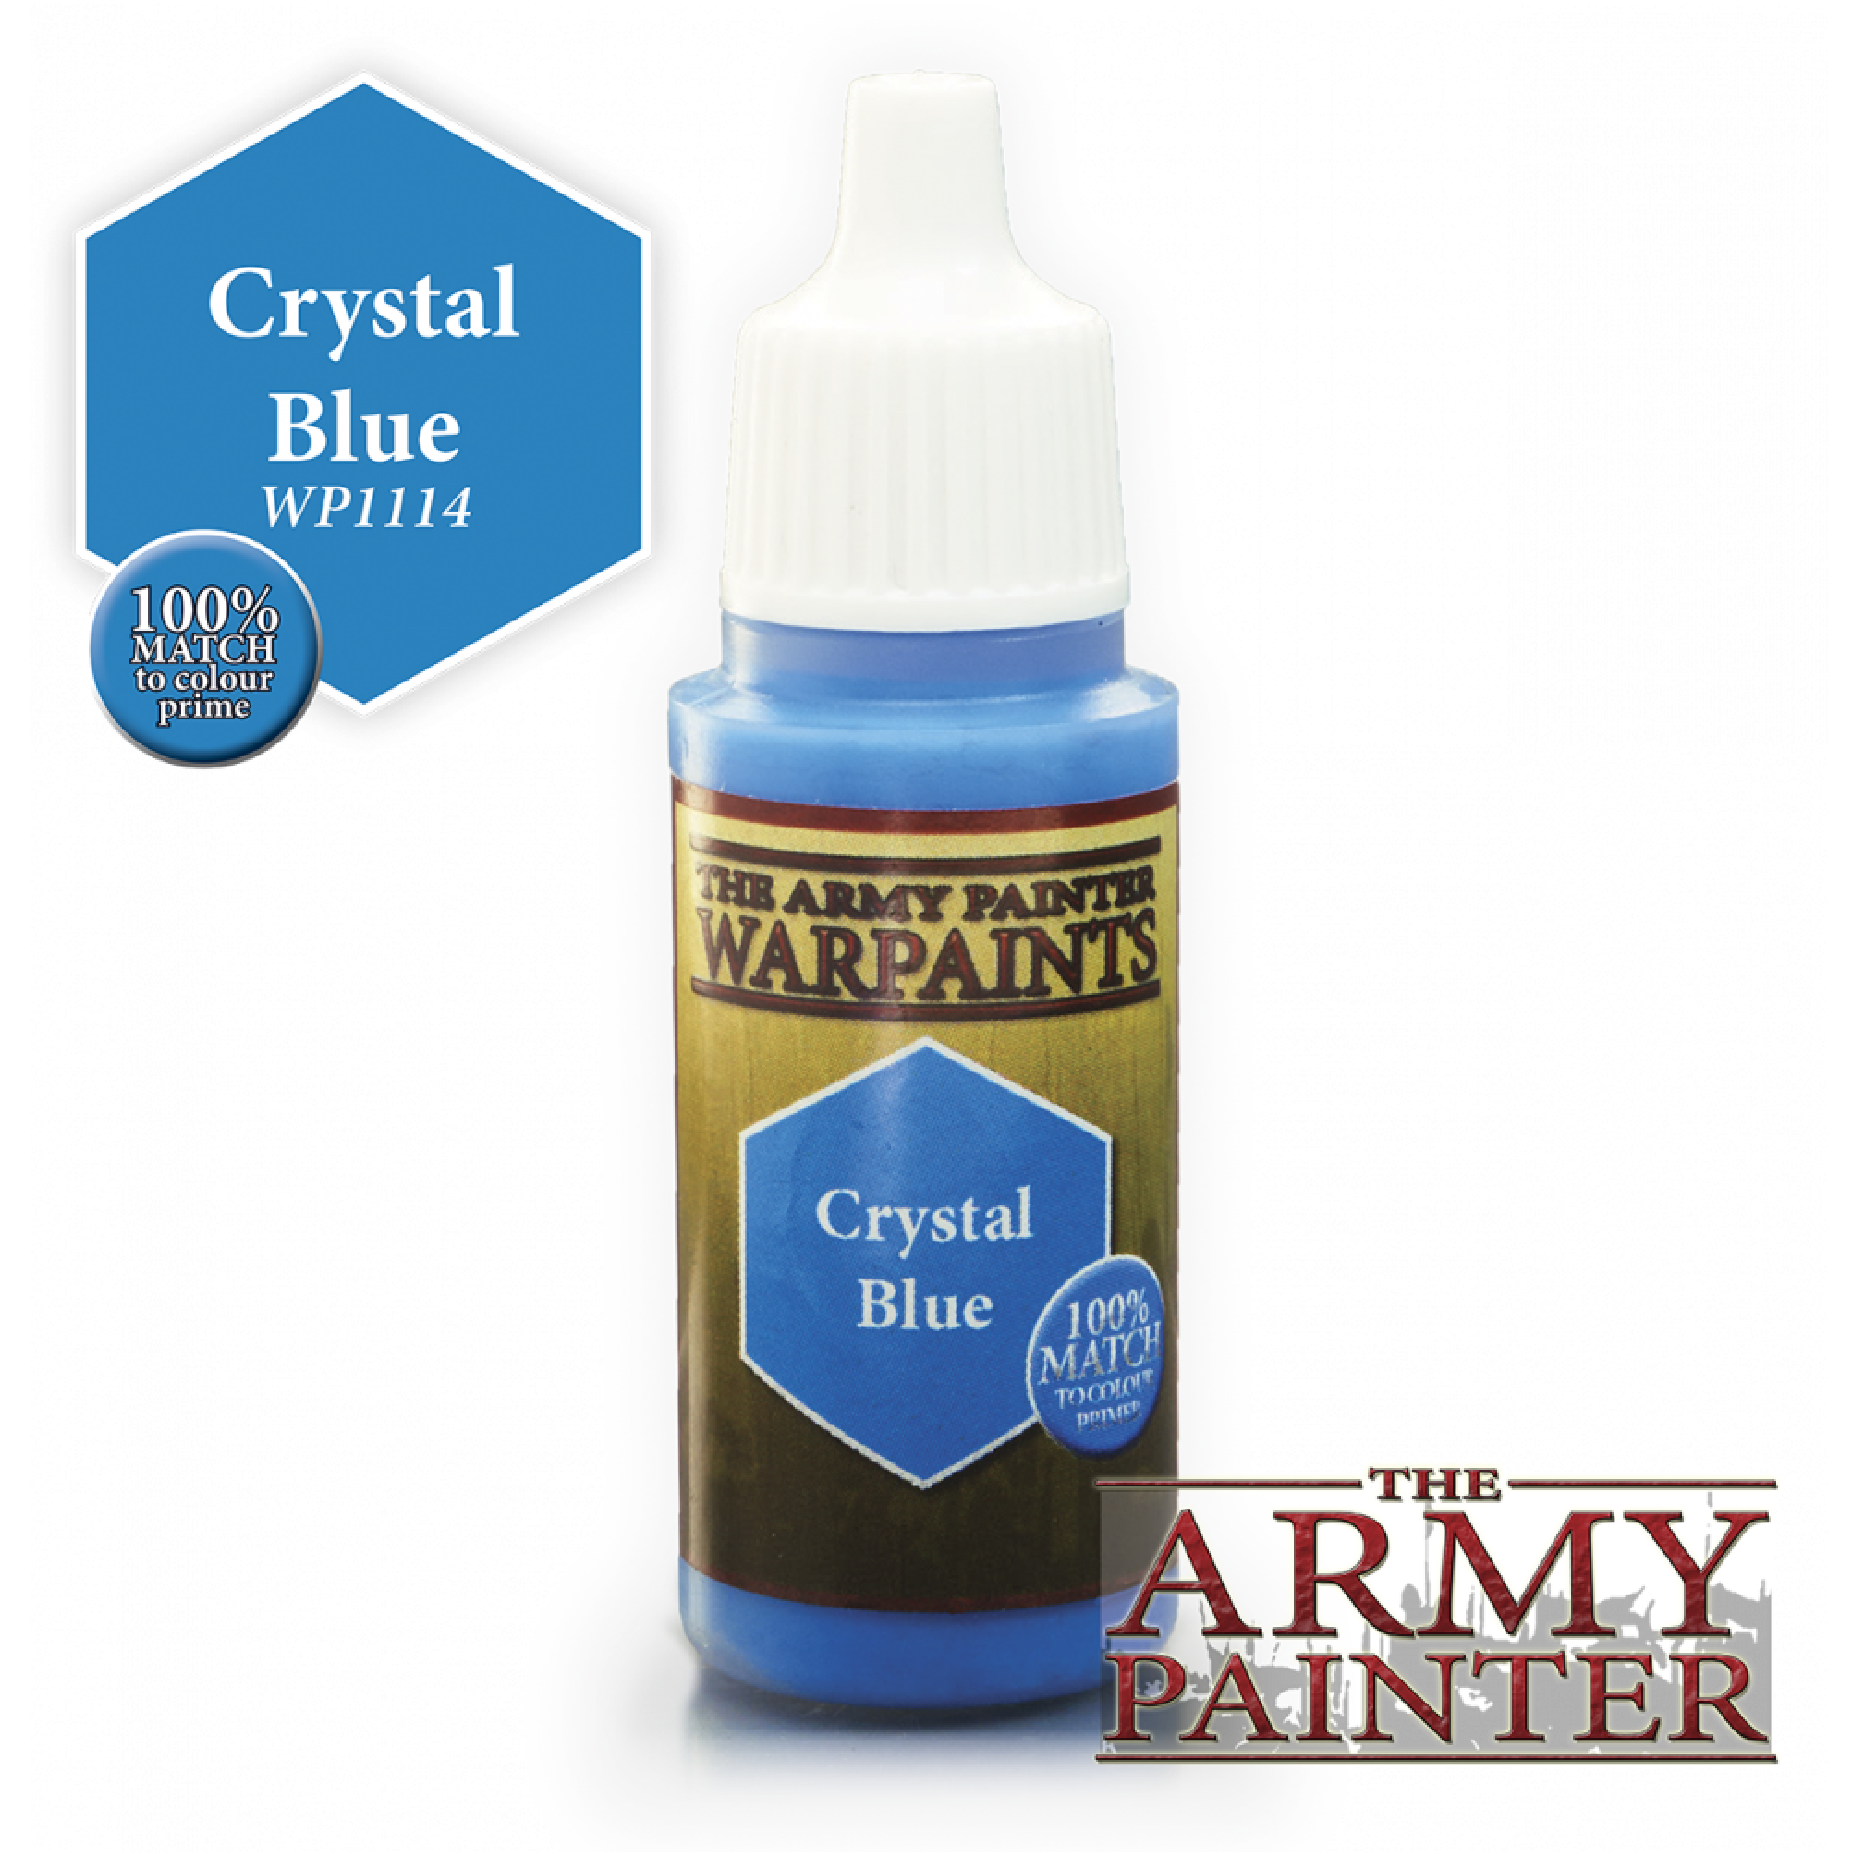 Army Painter Warpaint - Crystal Blue